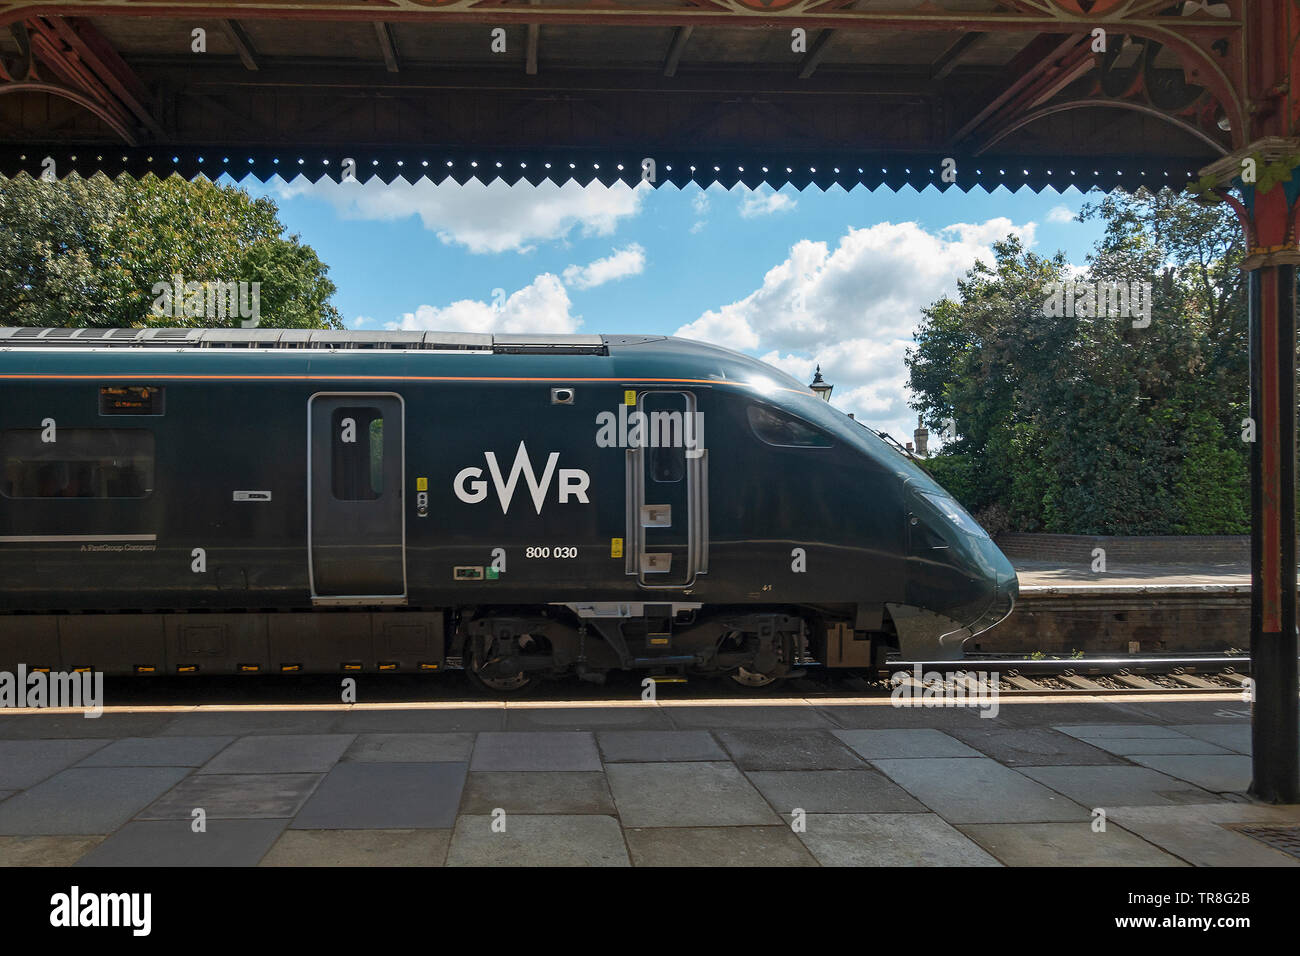 A GWR Class 800 Intercity Express Train by Hitachi electro-diesel multiple unit train passing through Great Malvern station. - Stock Image